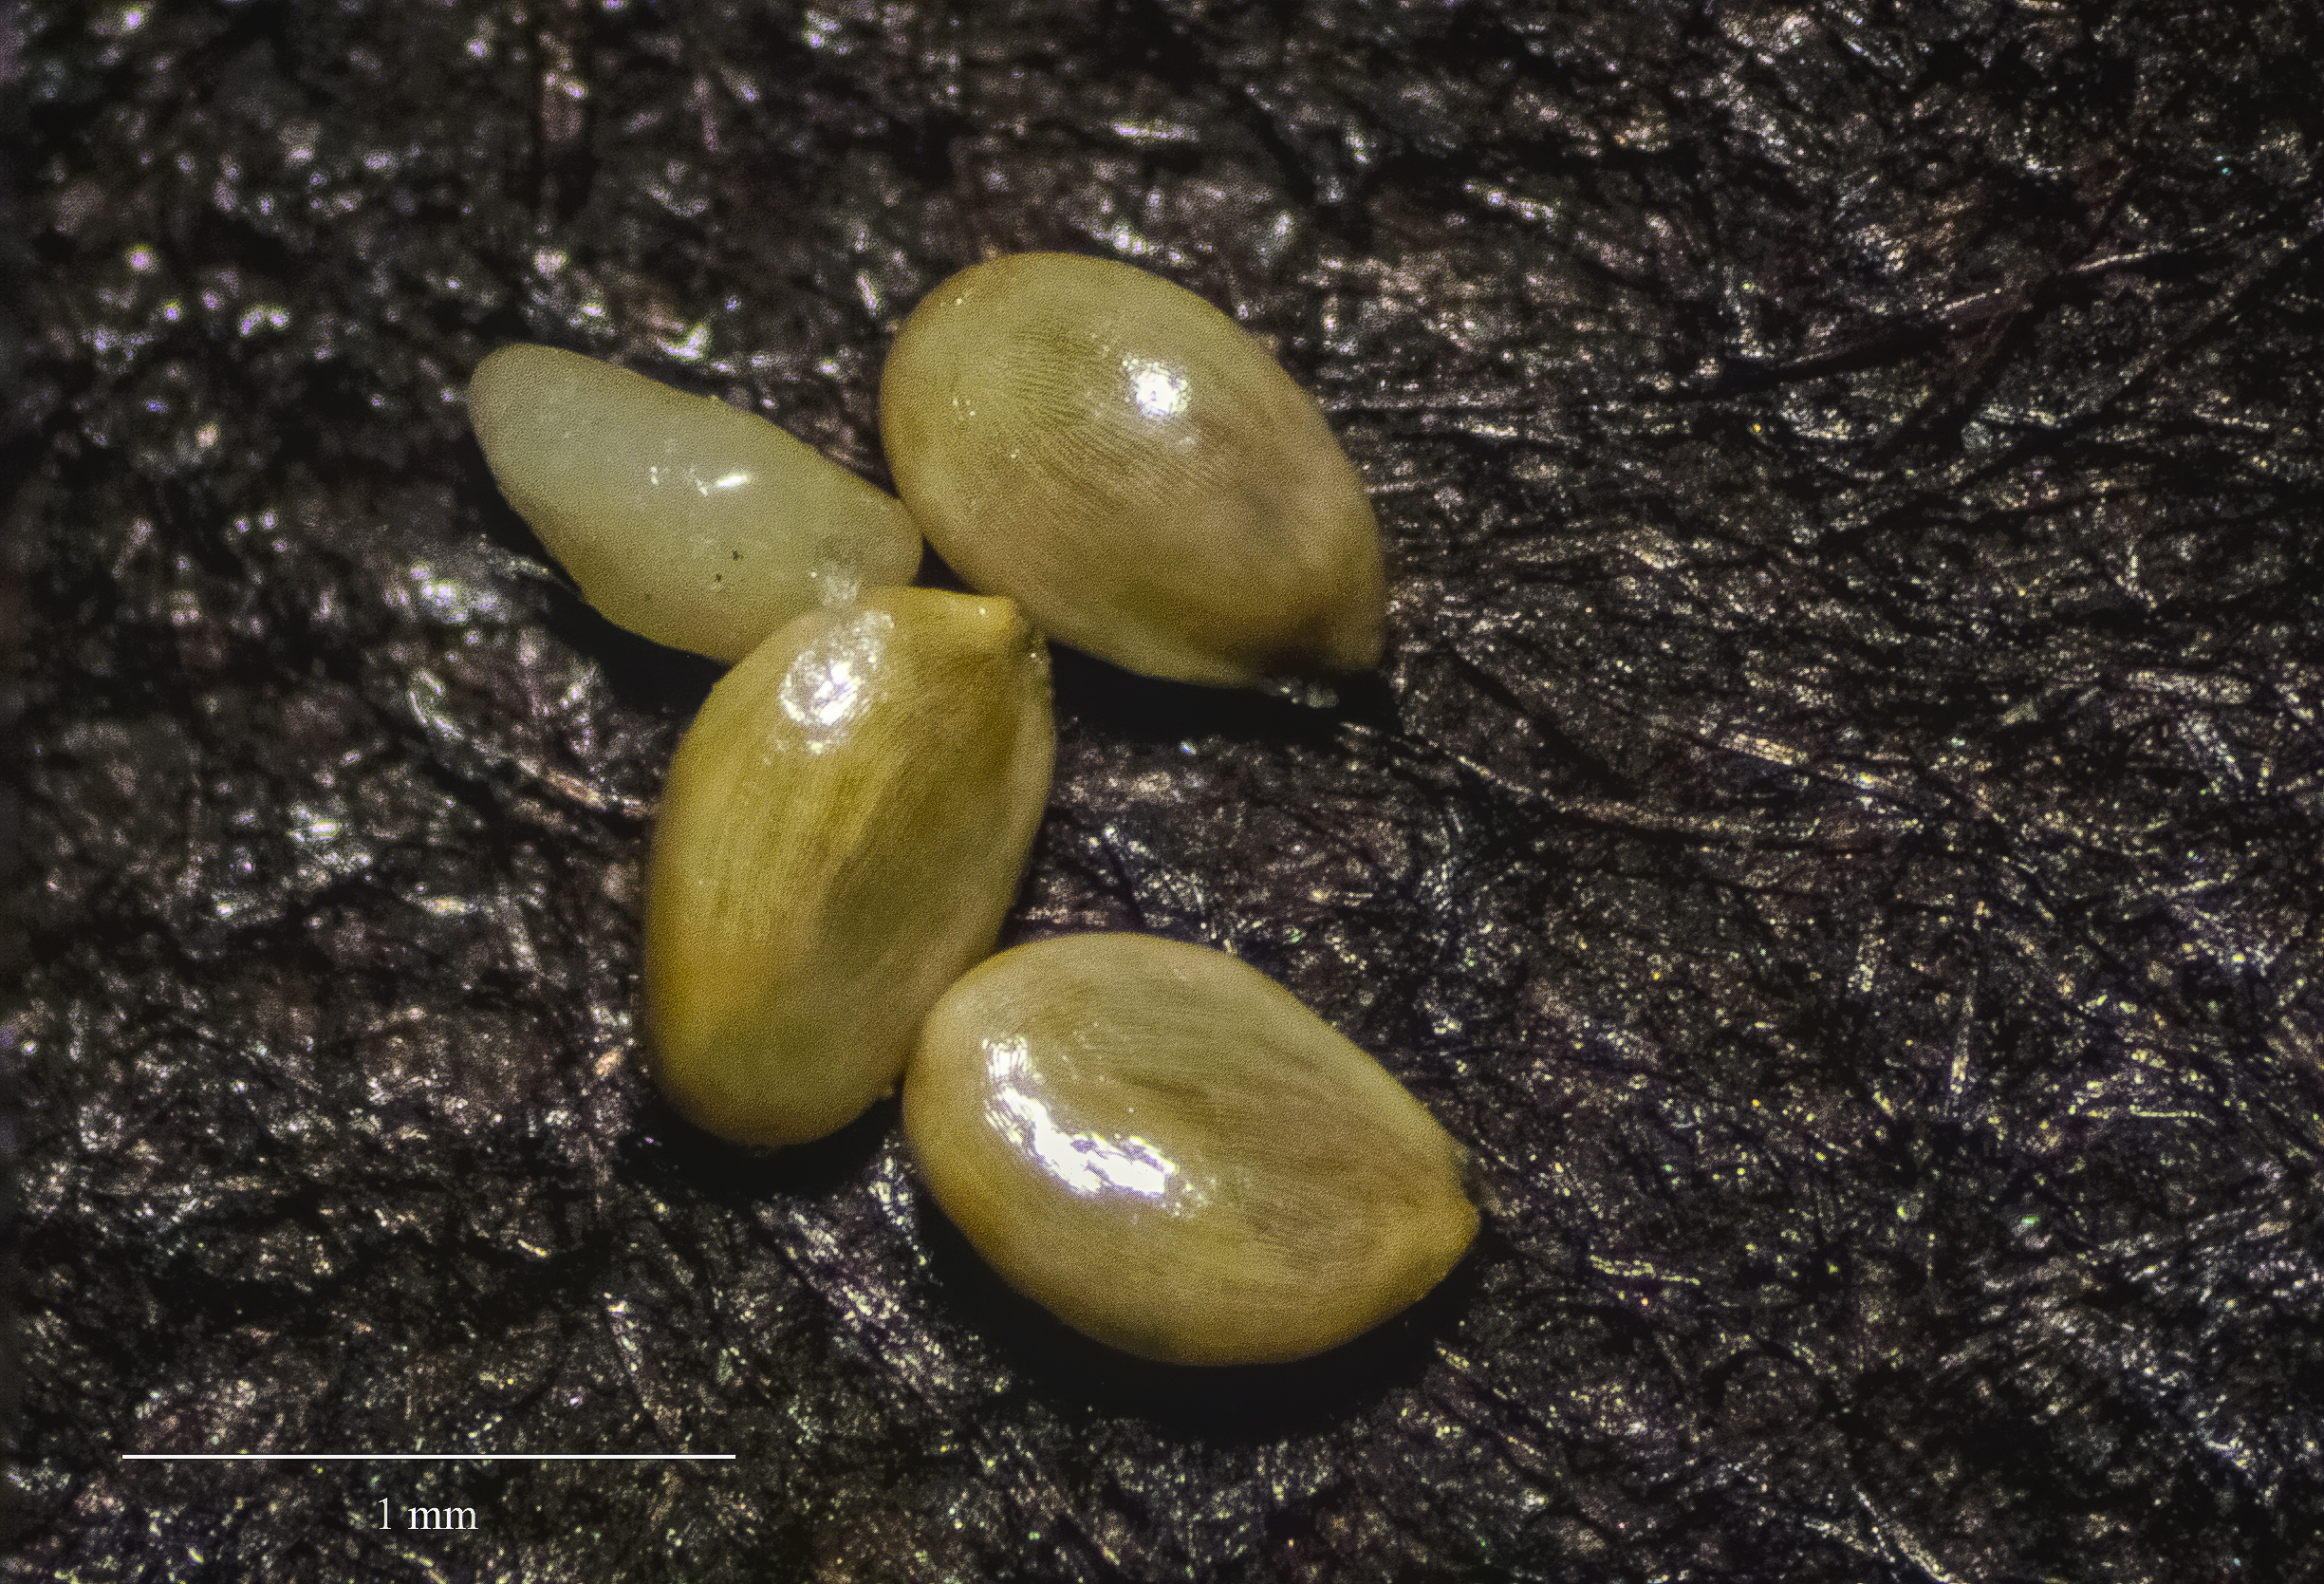 Yellow striated seeds of the endangered haha shrub.